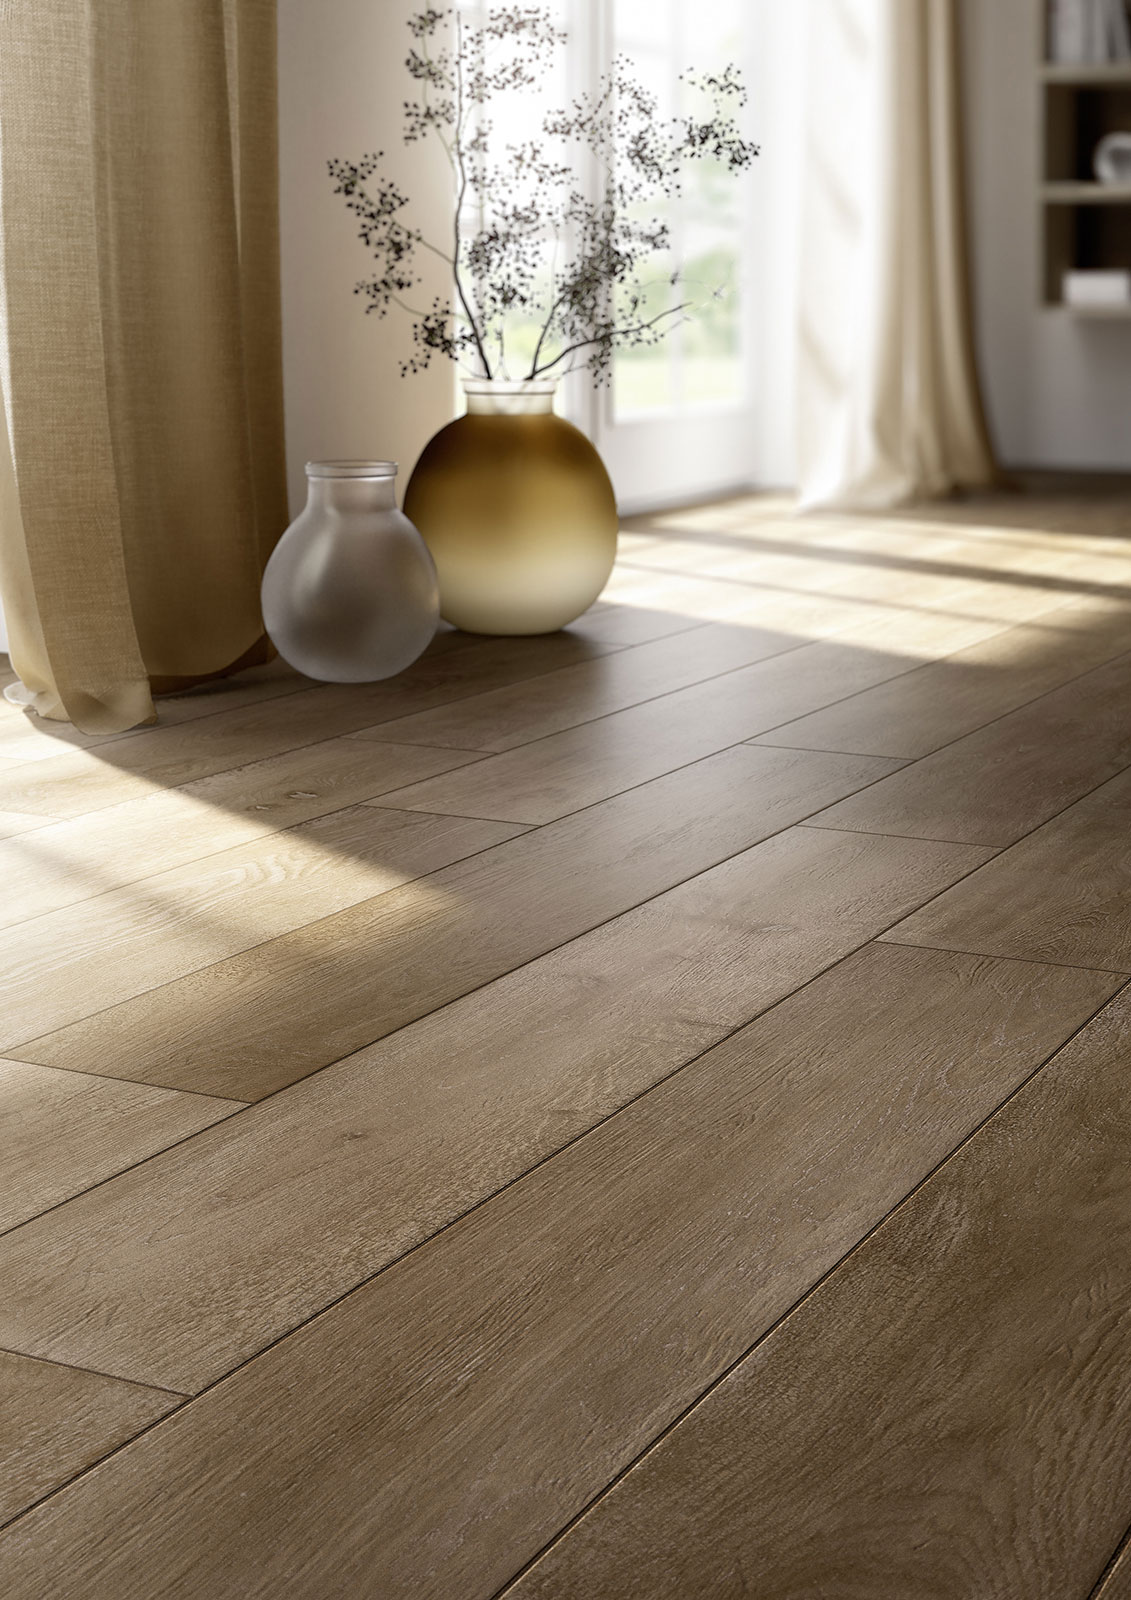 Wood effect and hardwood porcelain stoneware: discover all the effects -  Marazzi 6539 - Wood Effect And Hardwood Porcelain Stoneware Marazzi